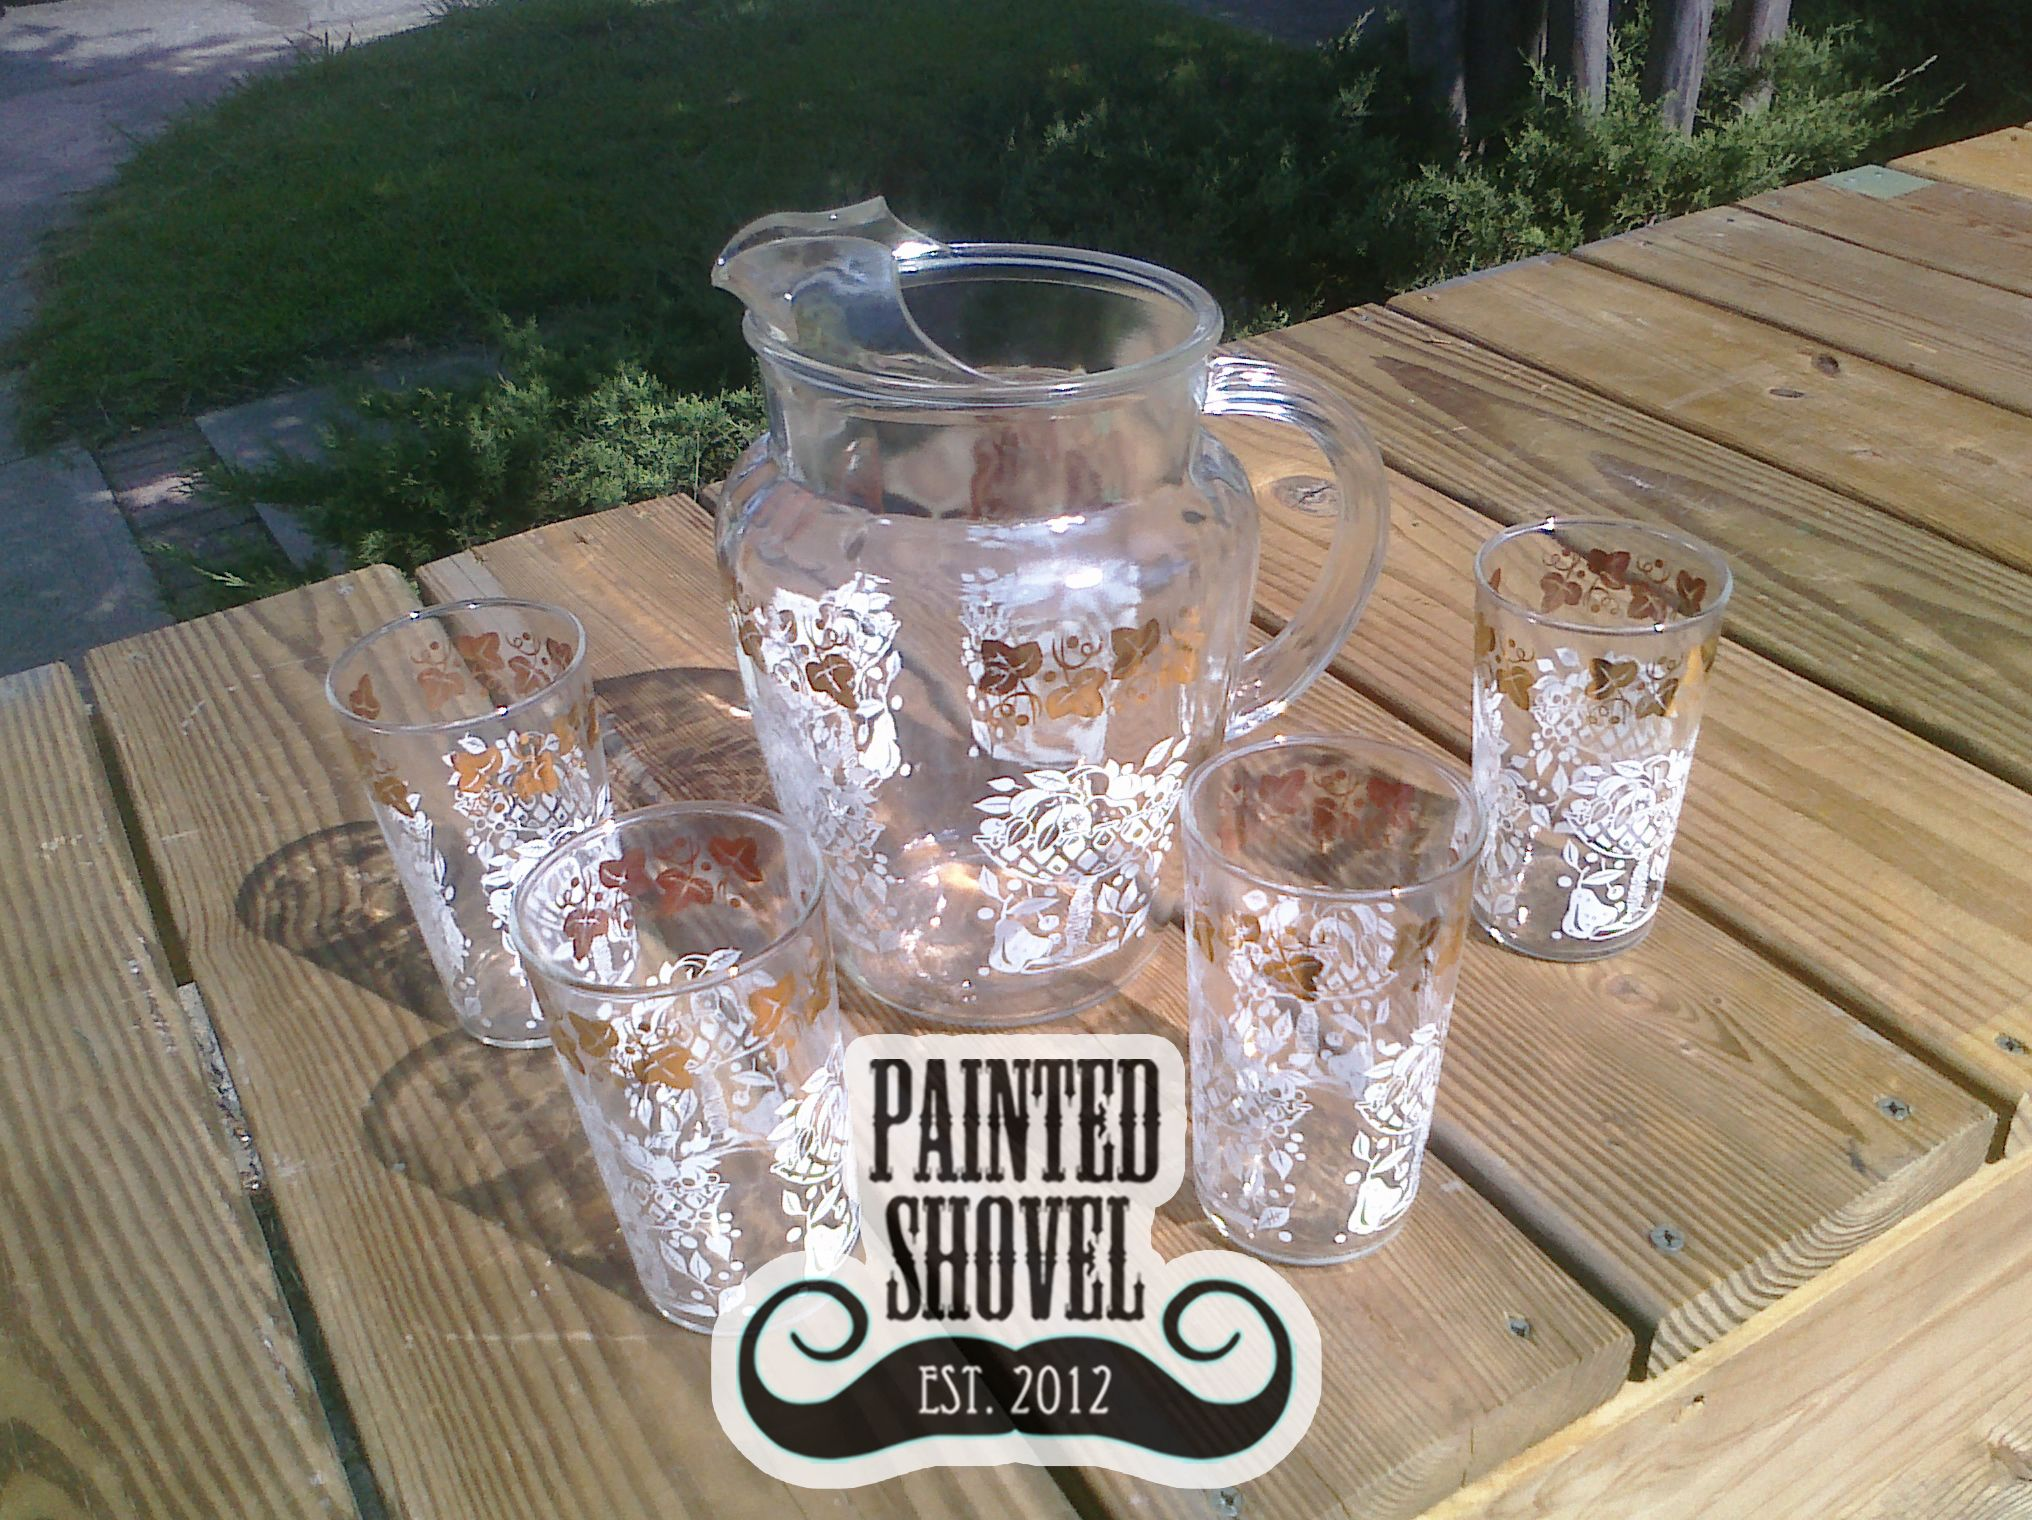 Vintage pitcher and glasses for sale at Painted Shovel in Avondale, AL.